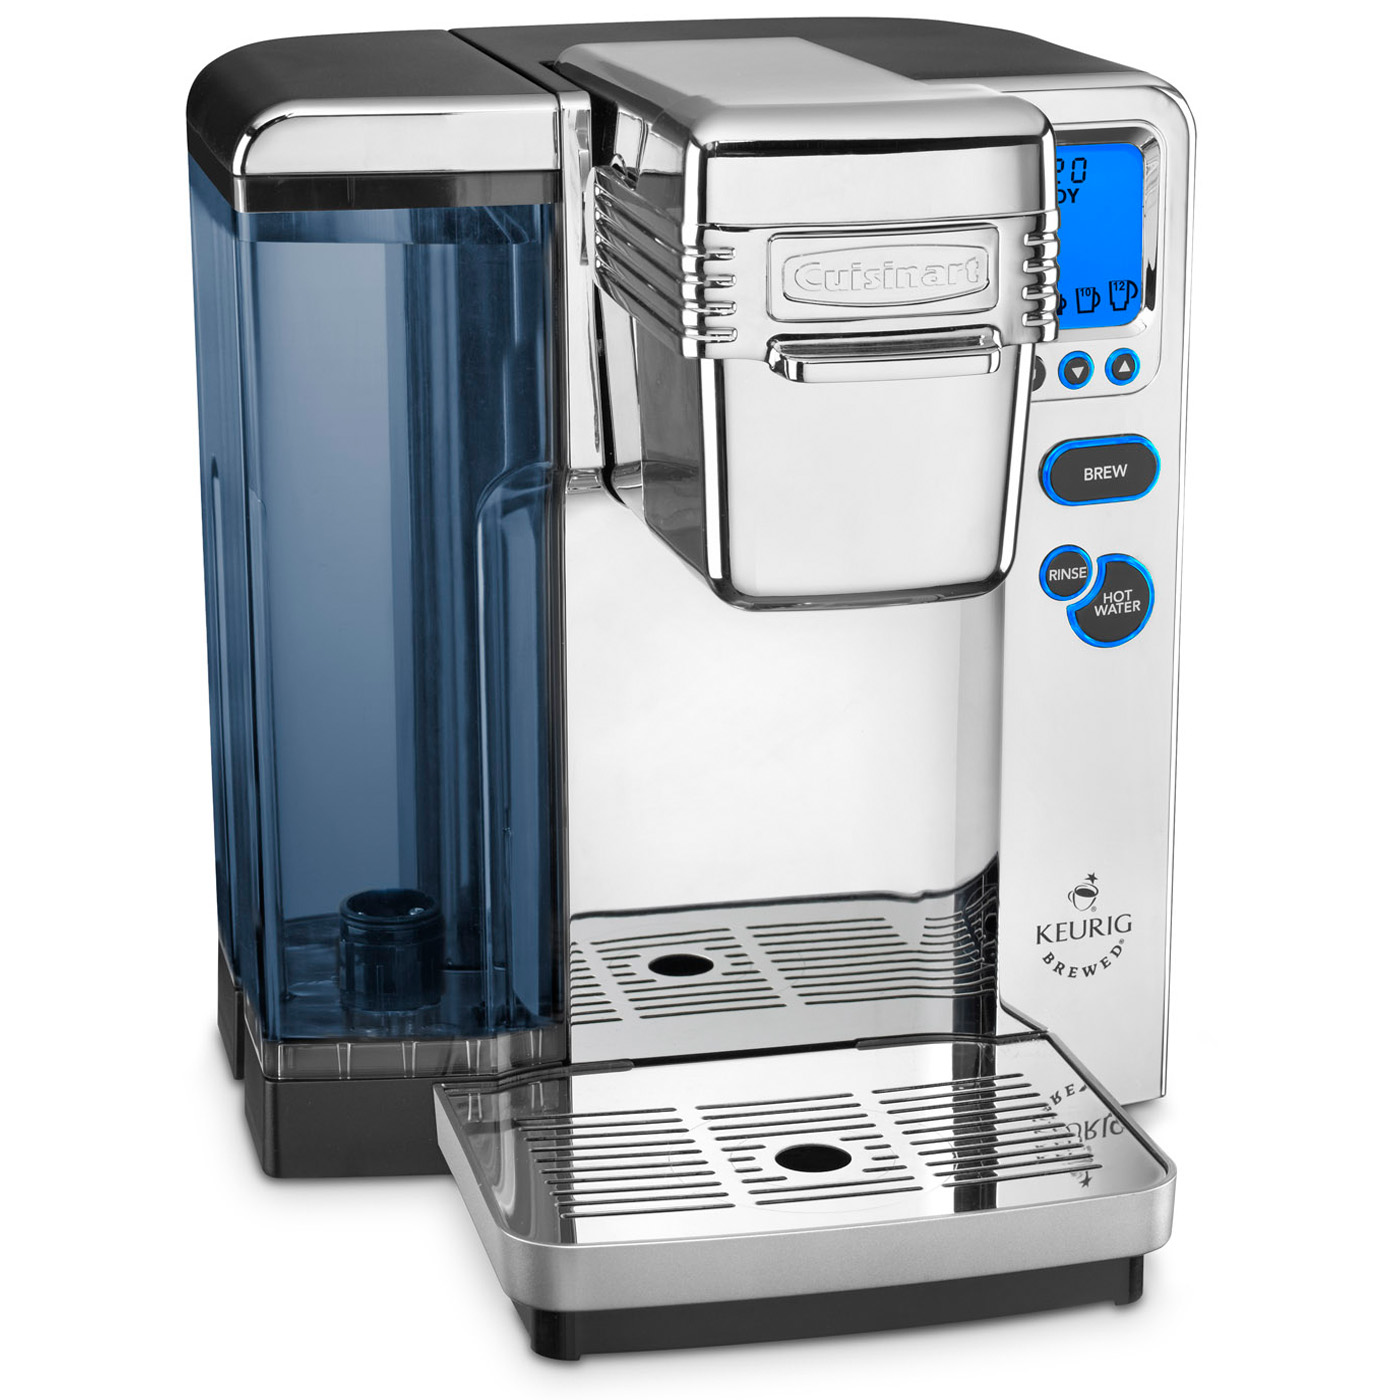 Keurig By Cuisinart Free Pictures Finder